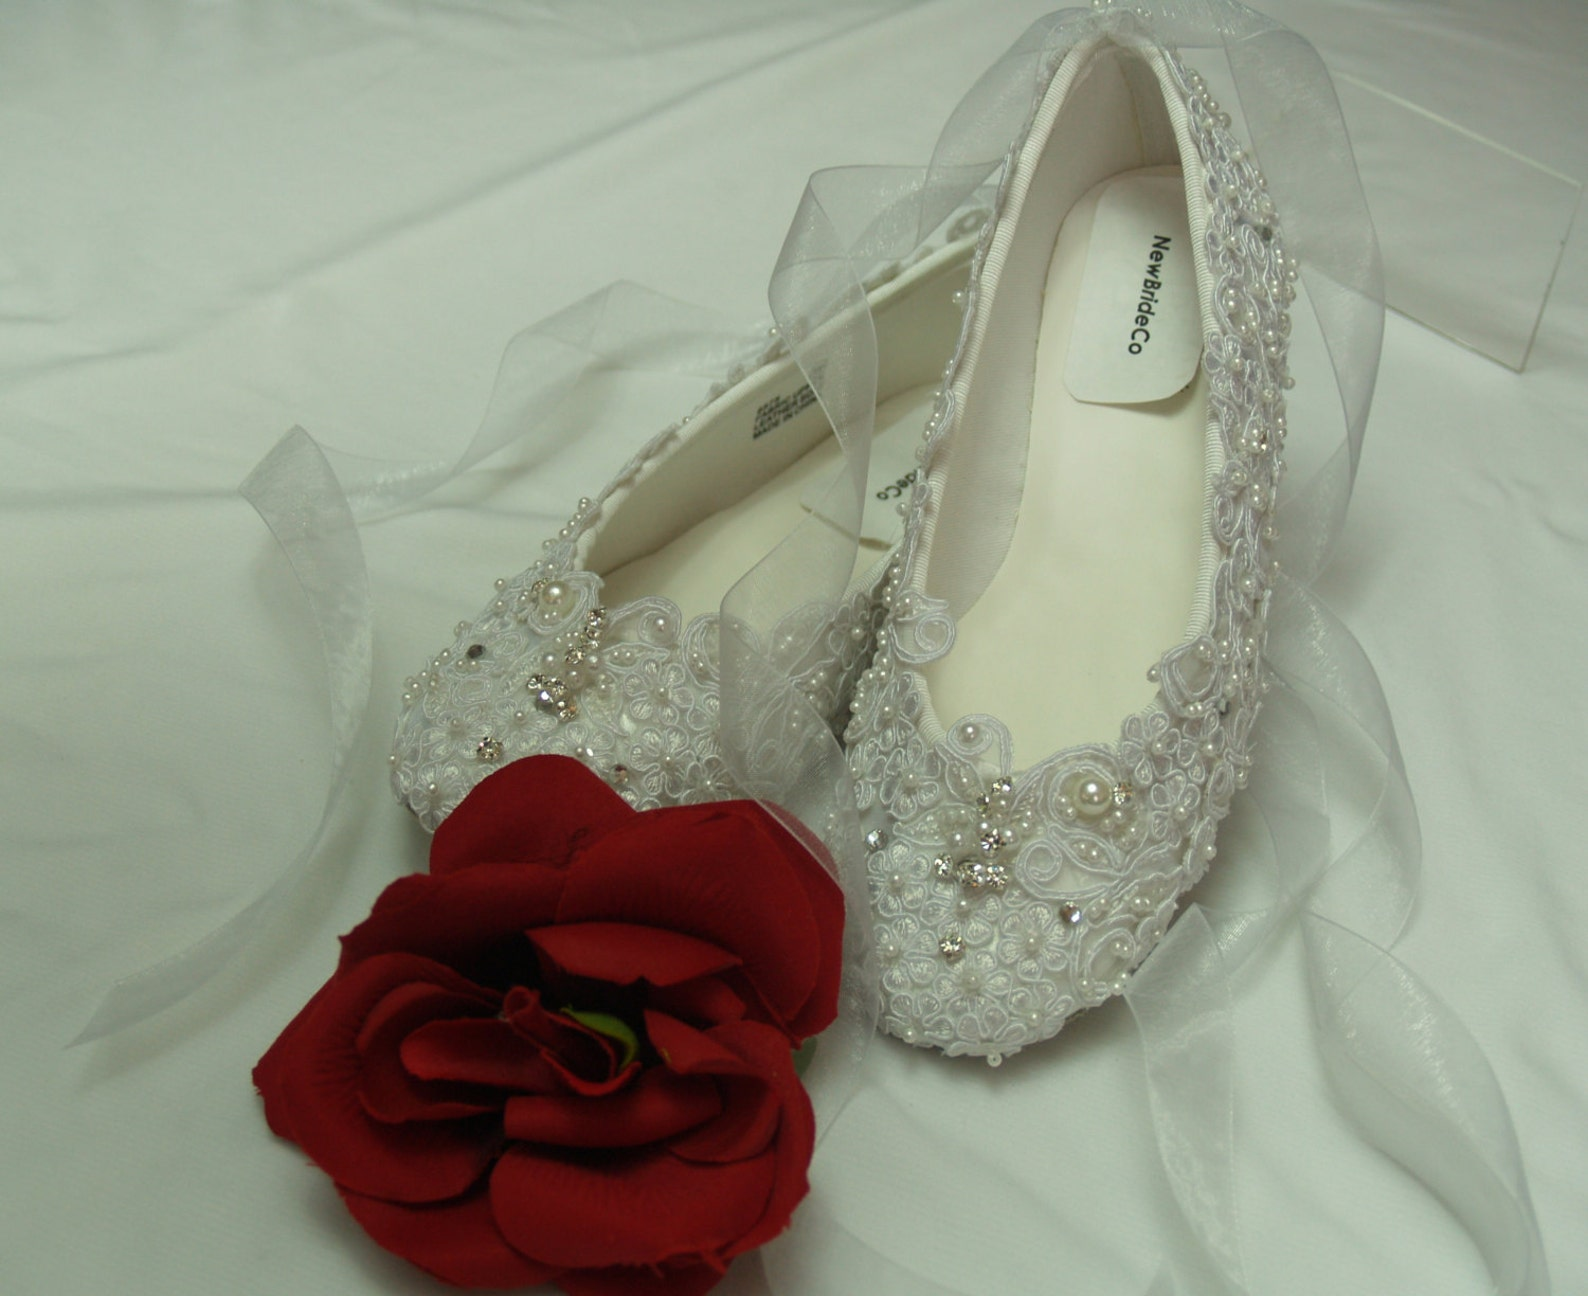 wedding ballet style slippers regally enhanced w lace swarovski crystals and pearls - white or ivory, edwardian, great gatsby, o